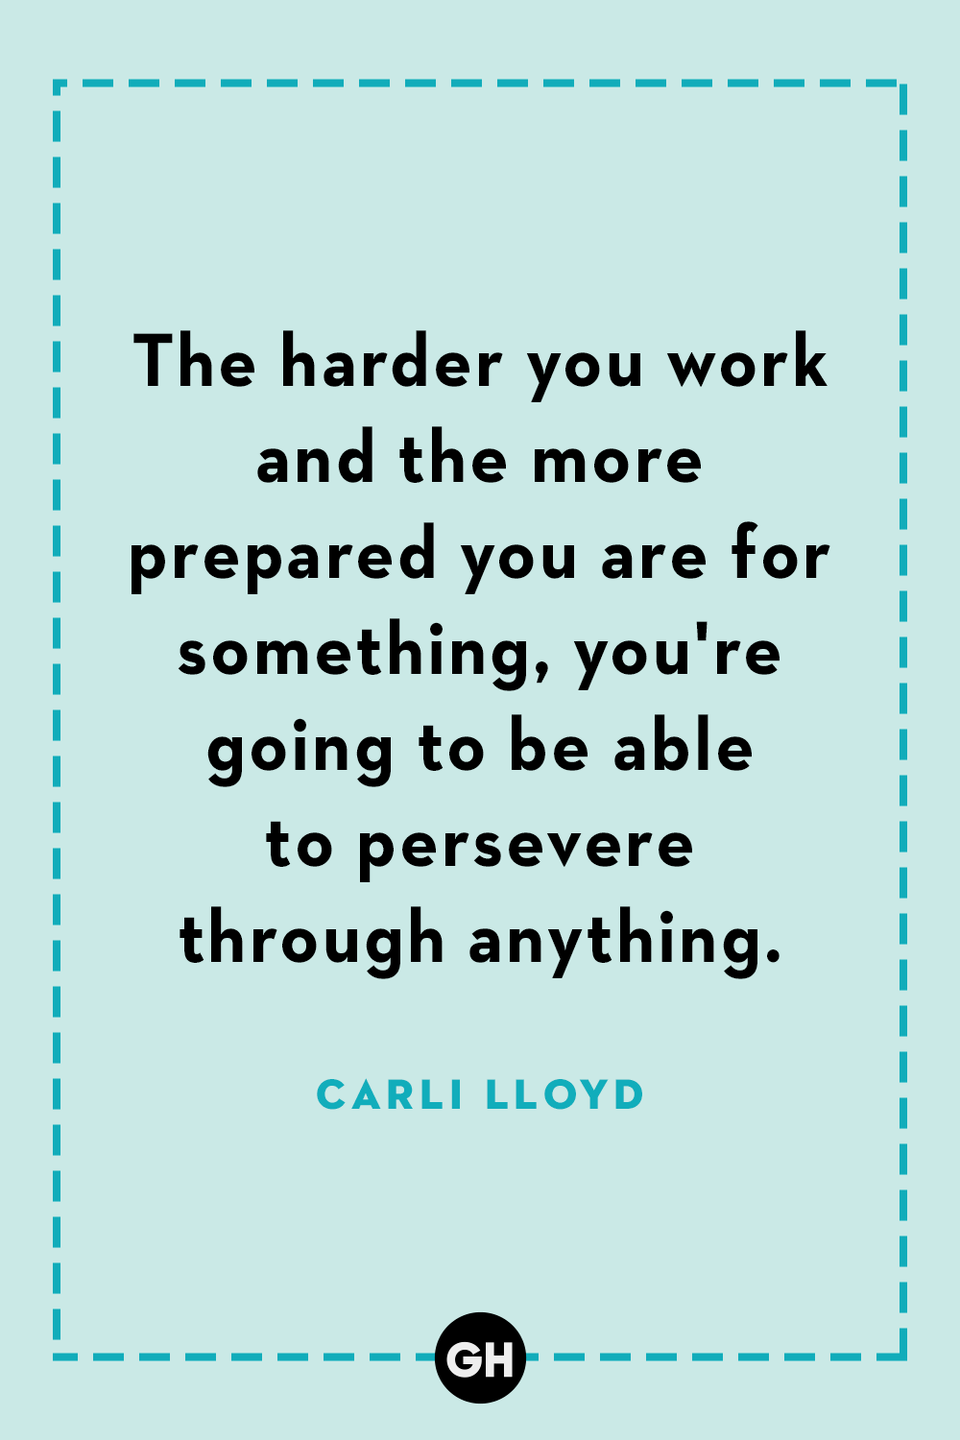 <p>The harder you work and the more prepared you are for something, you're going to be able to persevere through anything.</p>